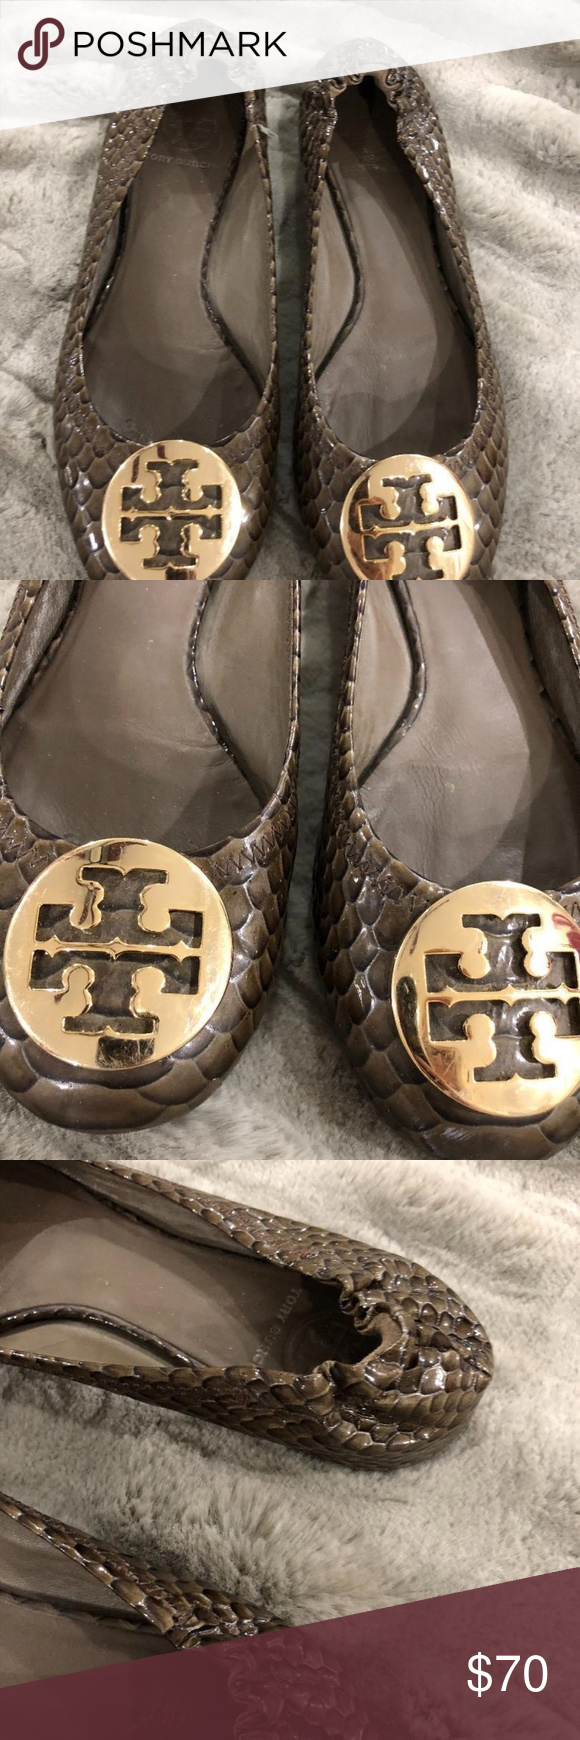 d251ef4431bd TORY BURCH REVA BALLET FLATS SNAKESKIN BROWN These Tory s are in great  condition